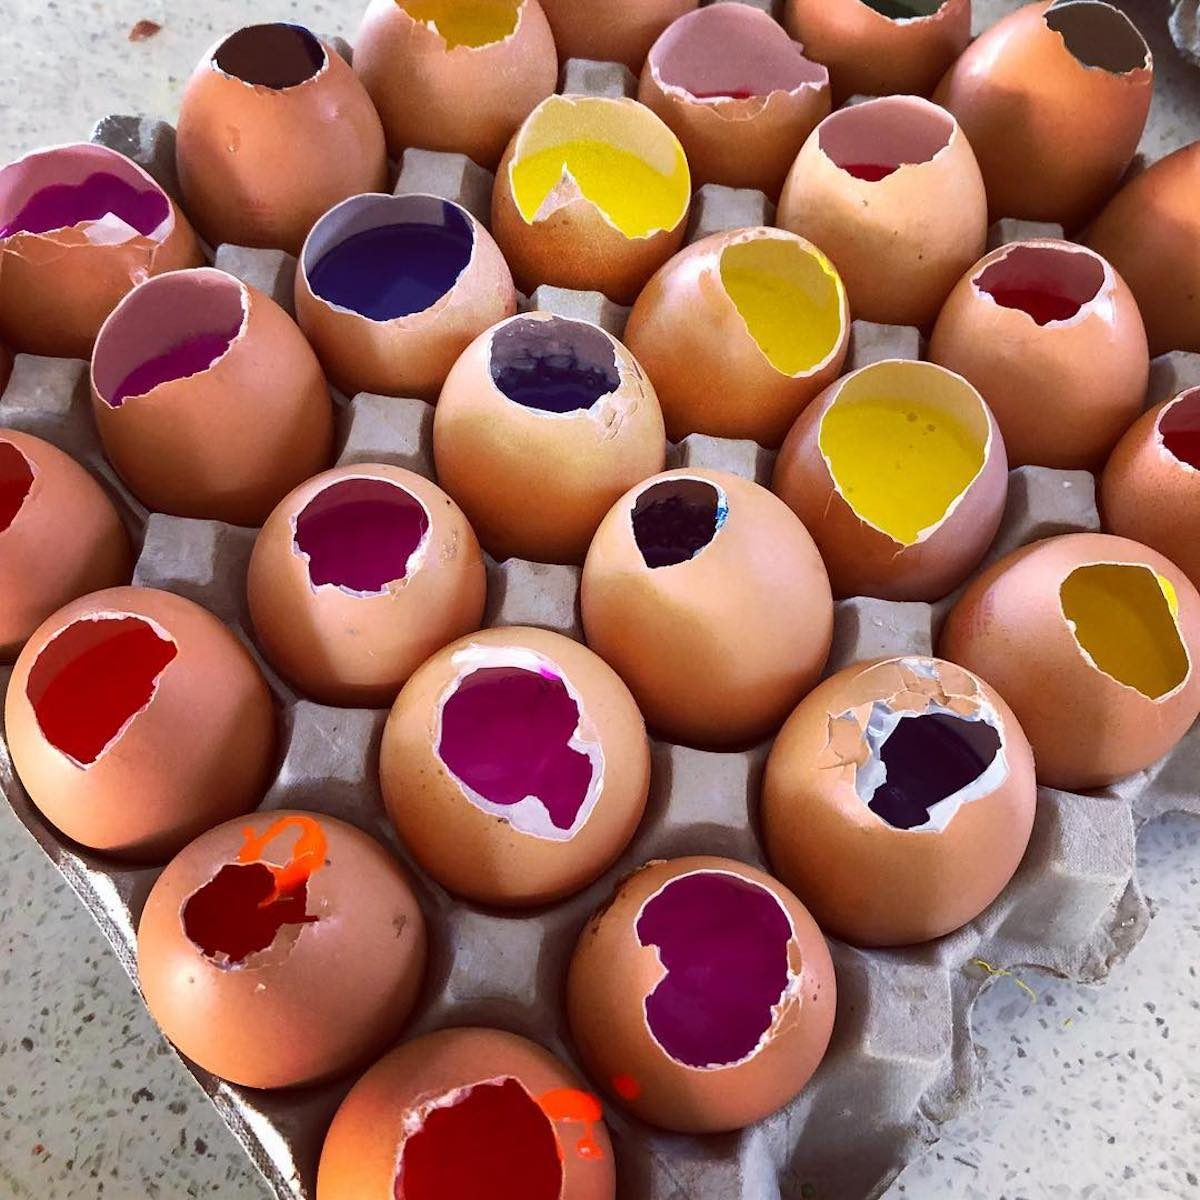 15 Reasons Why You Need to Stop Throwing Away Your Eggshells | Taste